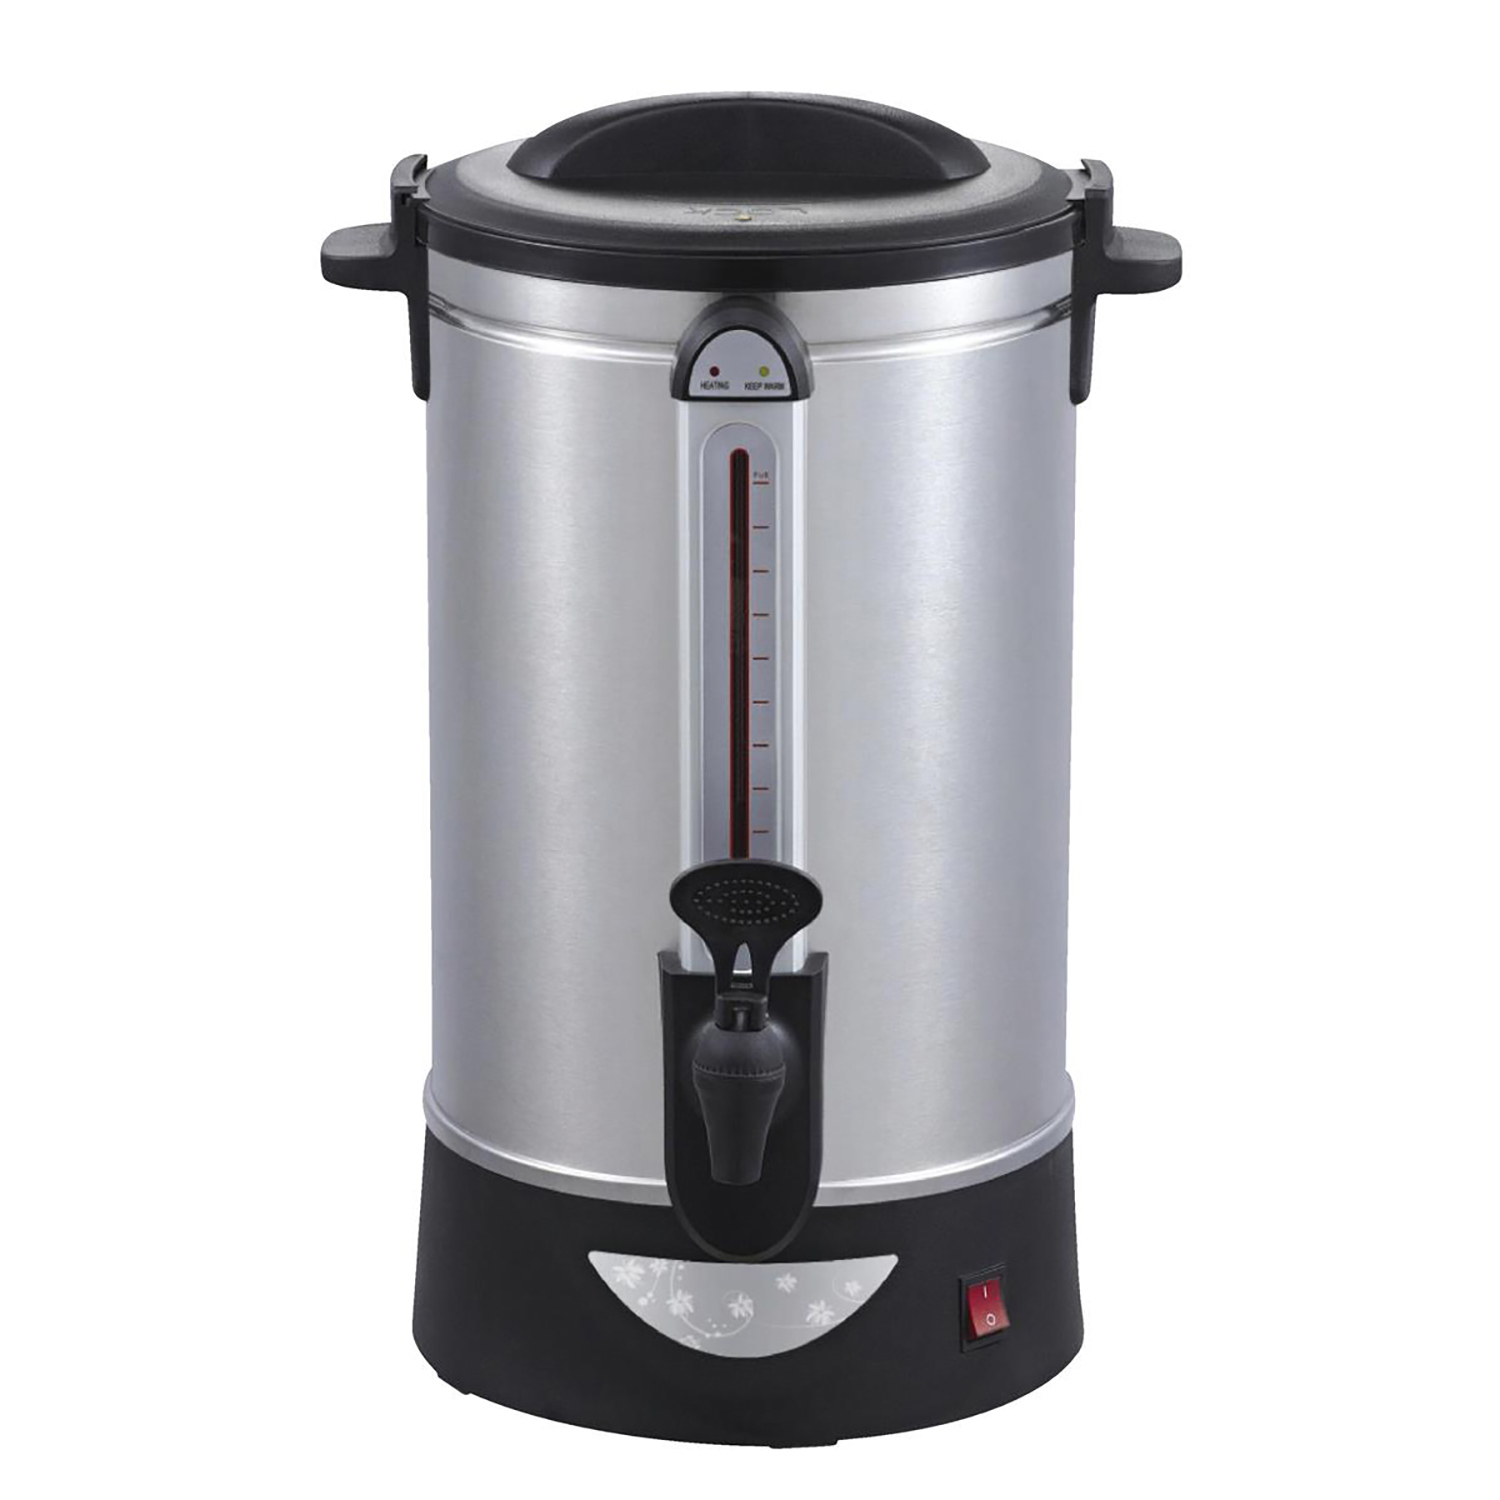 Flasks / Jugs / Urns 5 Star Facilities Catering Urn Locking Lid Water Gauge Boil Dry Overheat Protection 2500W 30 Litre